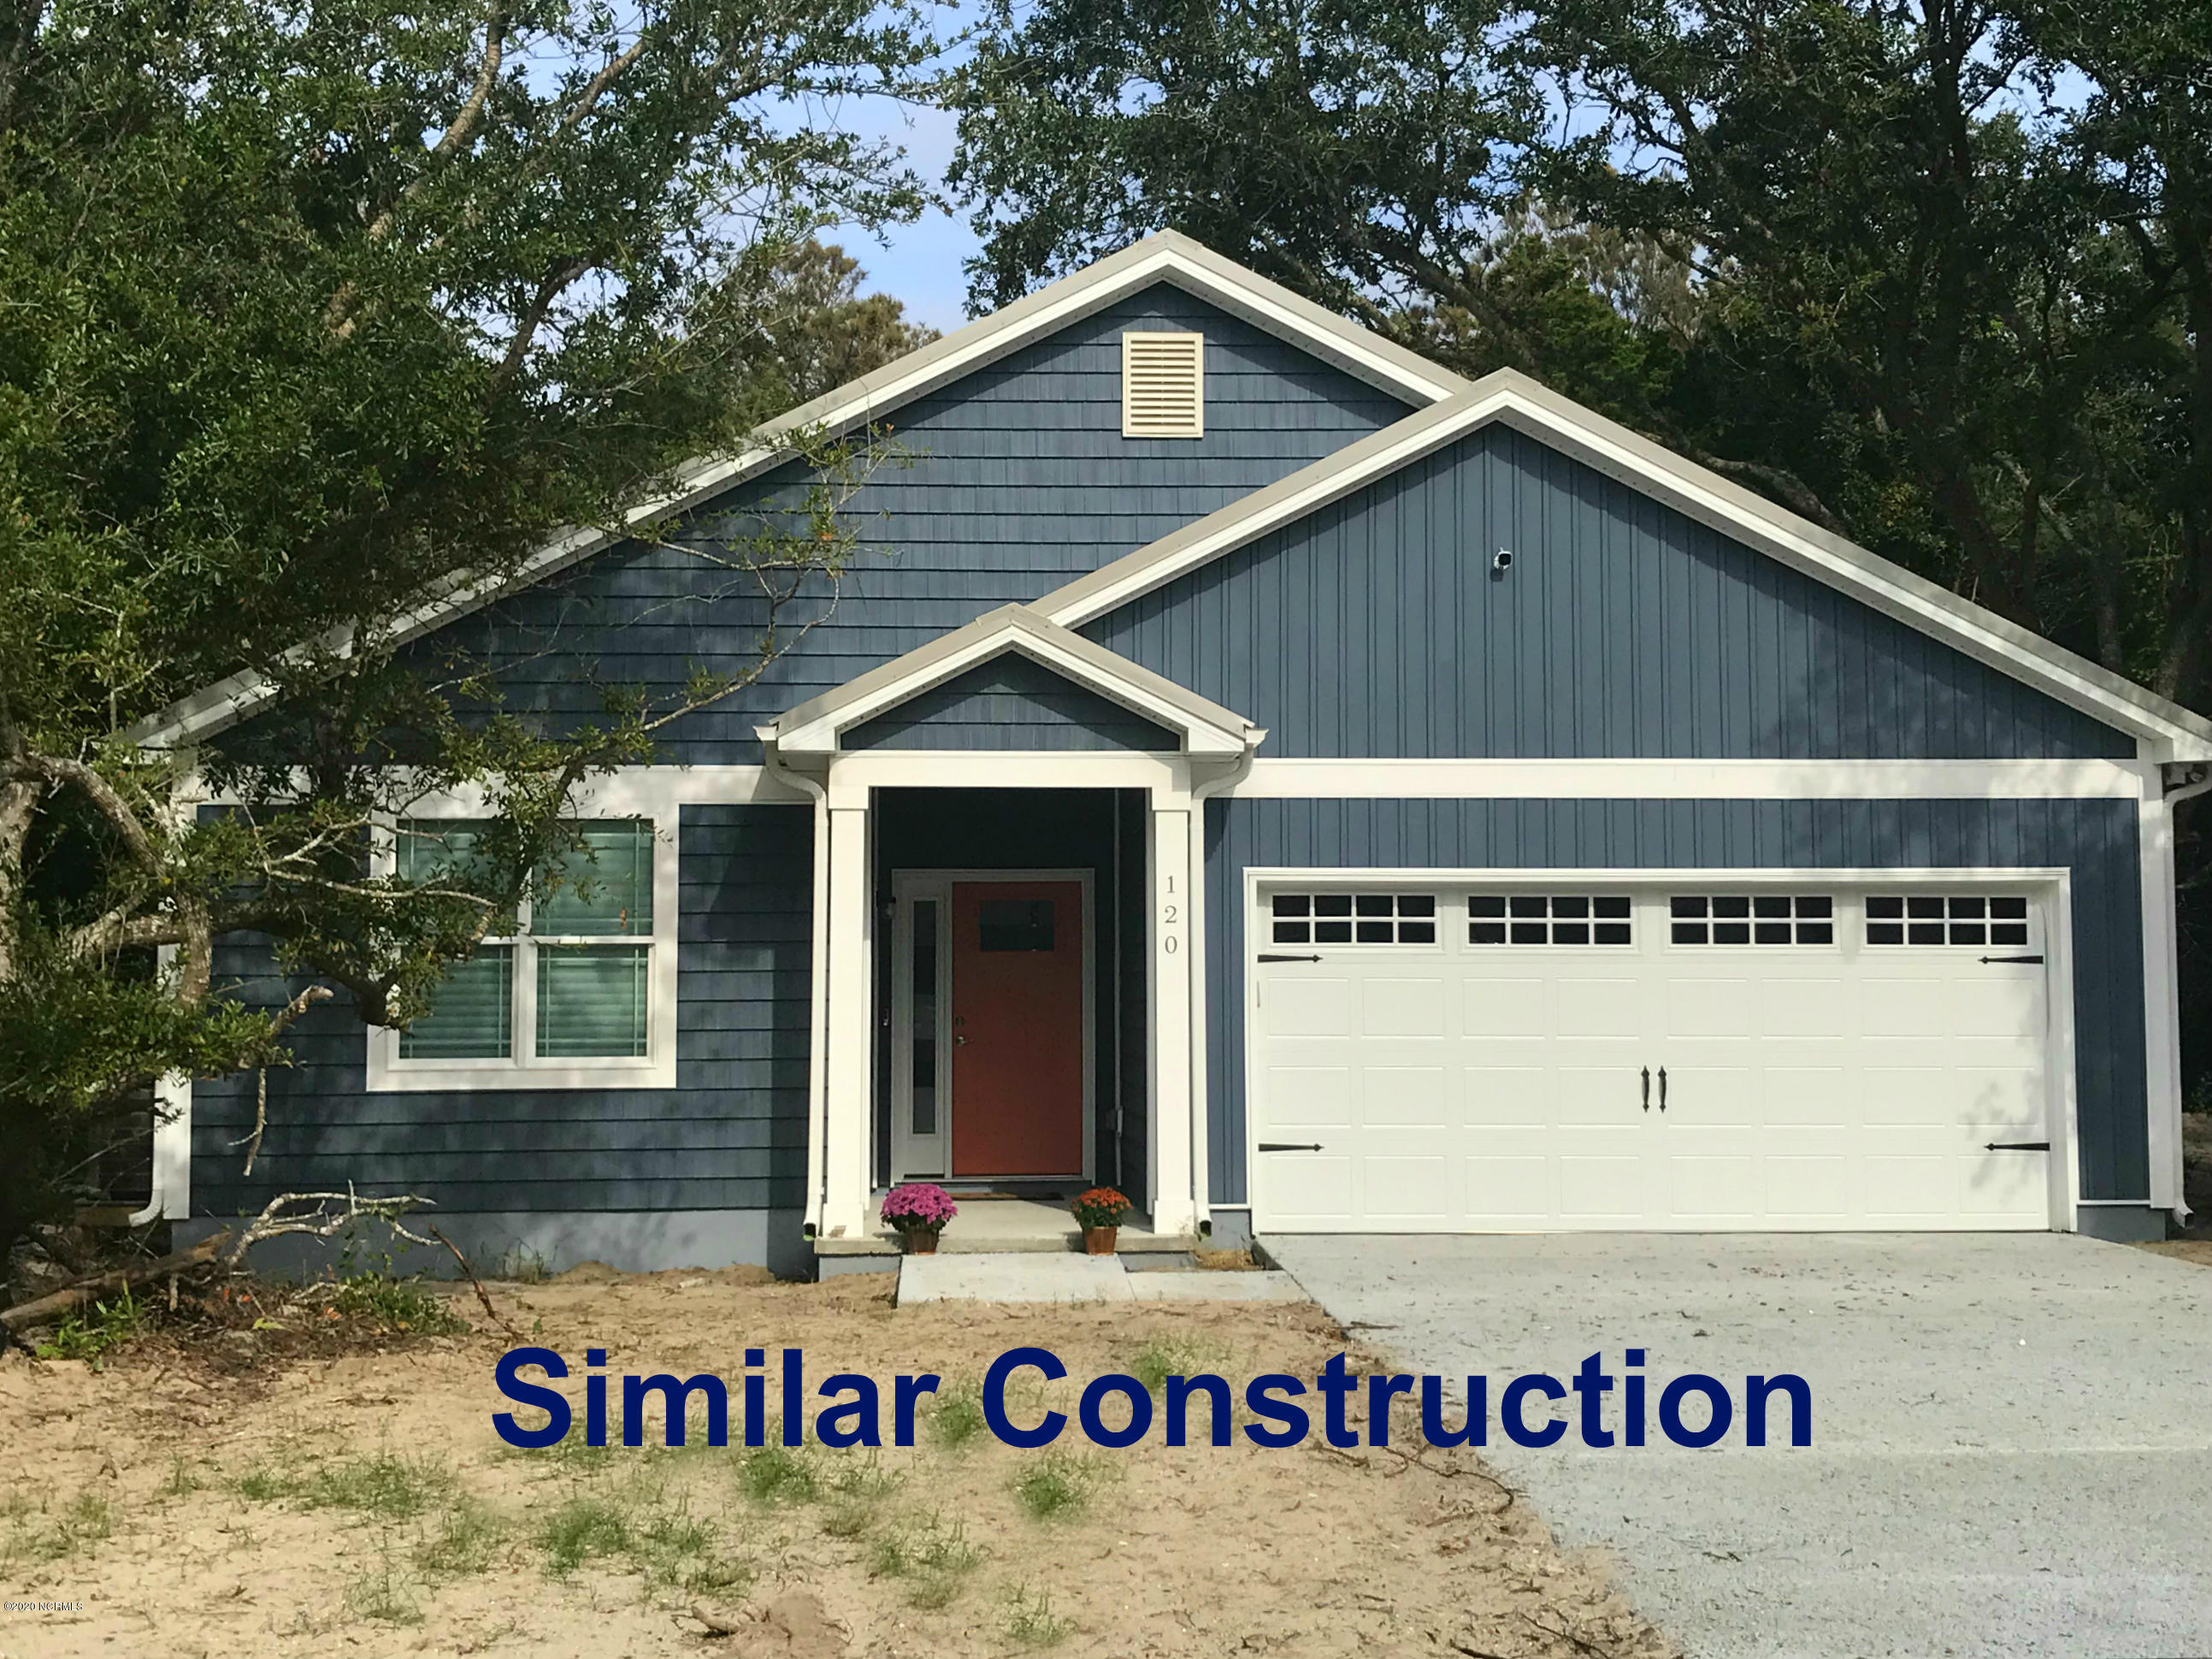 124 Evergreen Lane, Pine Knoll Shores, North Carolina 28512, 3 Bedrooms Bedrooms, 5 Rooms Rooms,2 BathroomsBathrooms,Single family residence,For sale,Evergreen,100190263